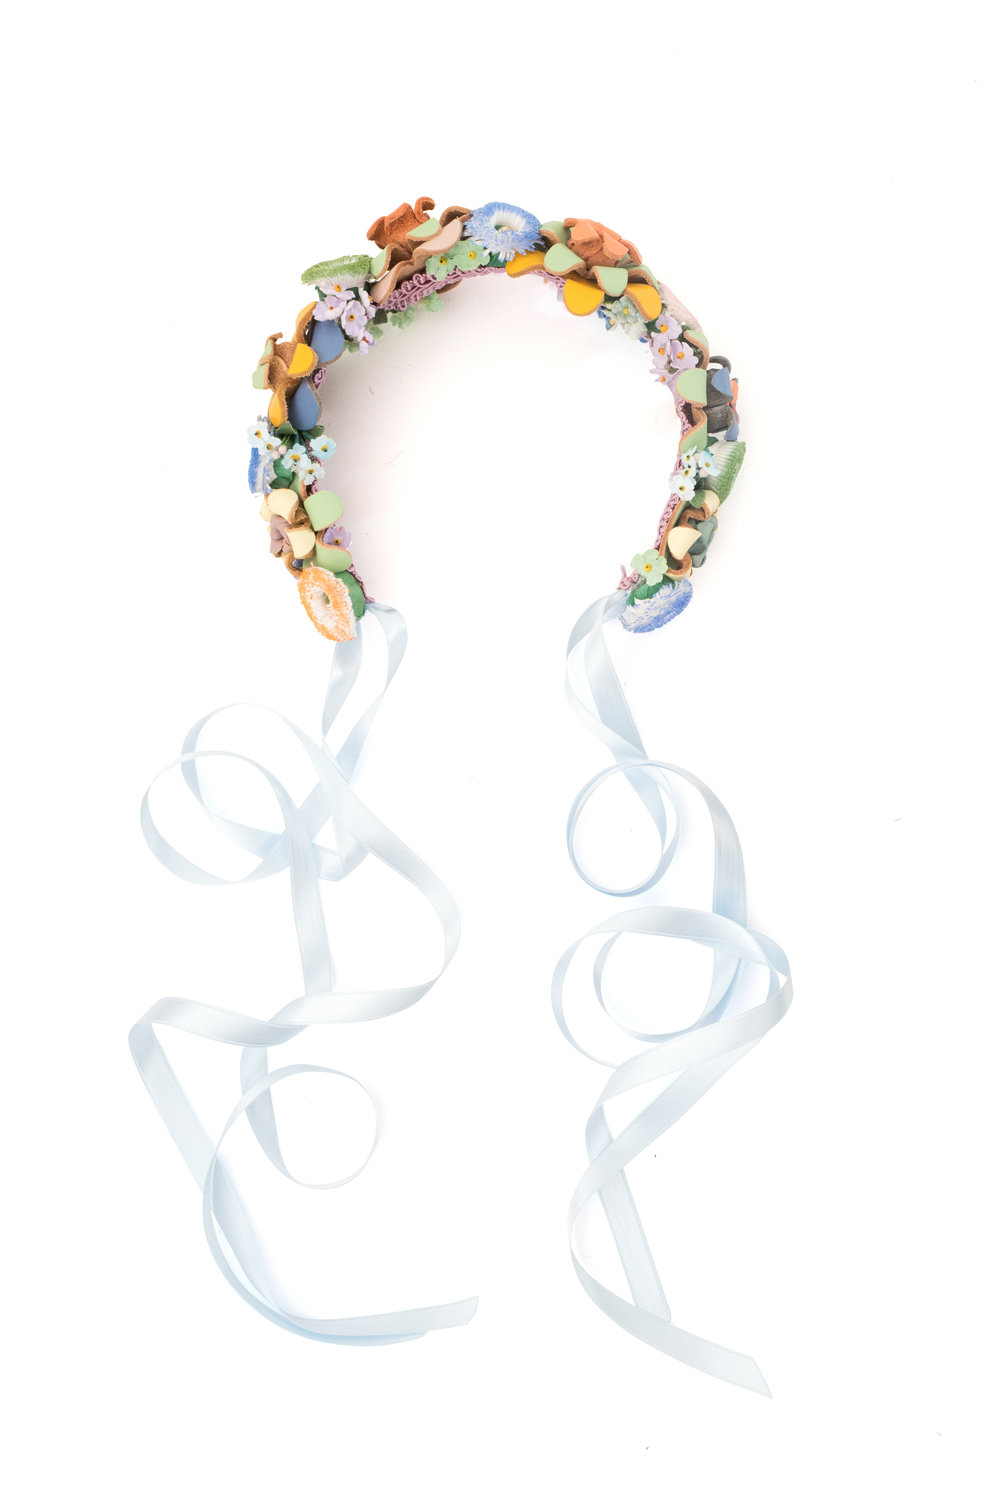 WeAreFlowergirls-Midsommar-Collection-Flowercrown-Marini-€109-cropped.jpg